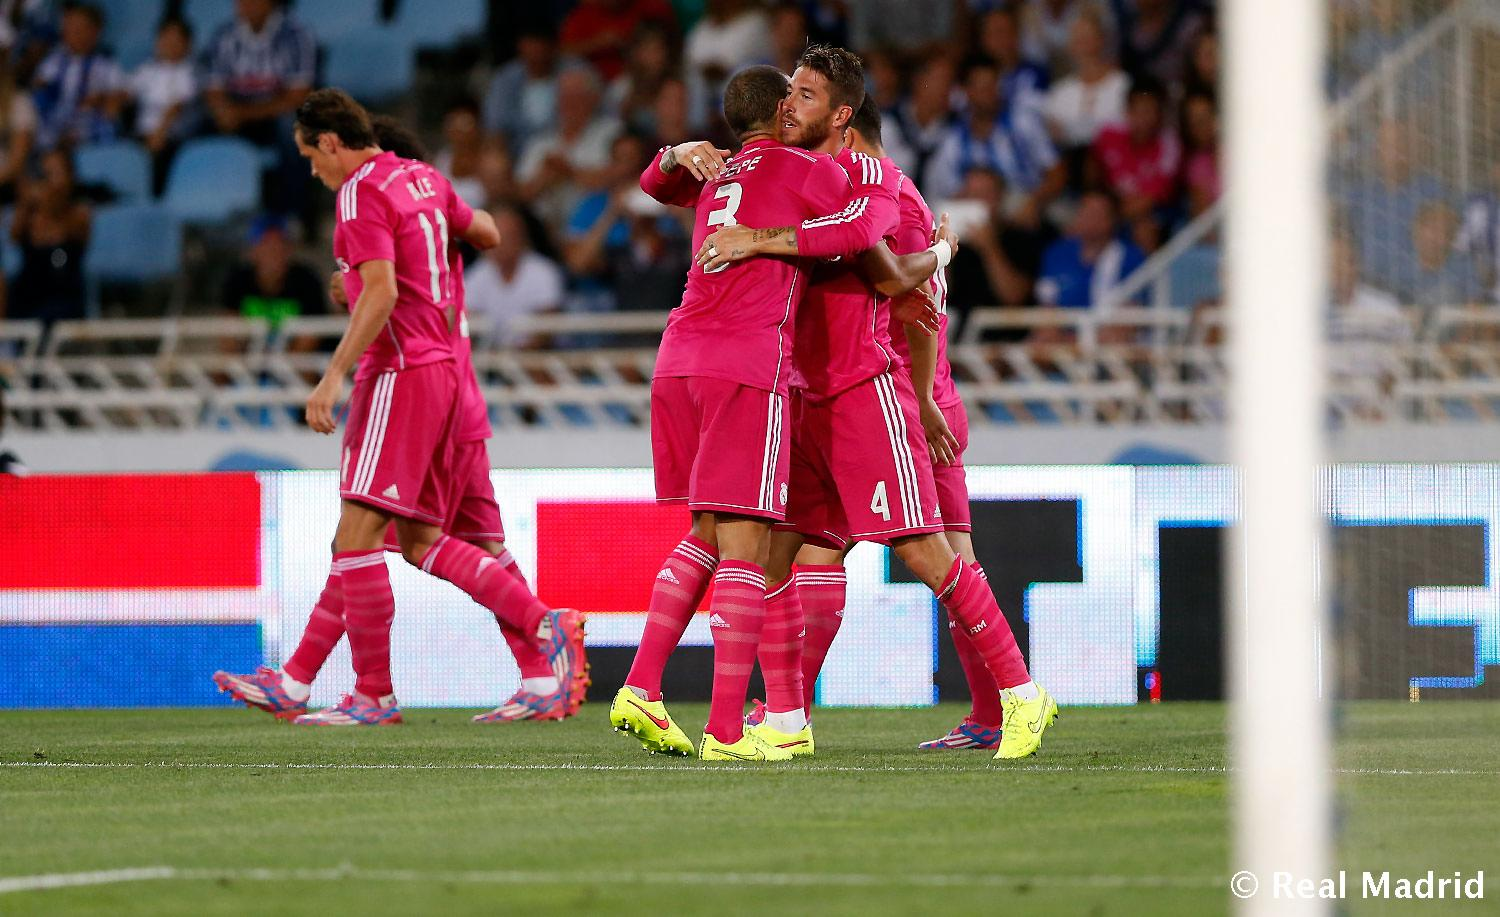 Real Madrid - Real Sociedad - Real Madrid - 31-08-2014